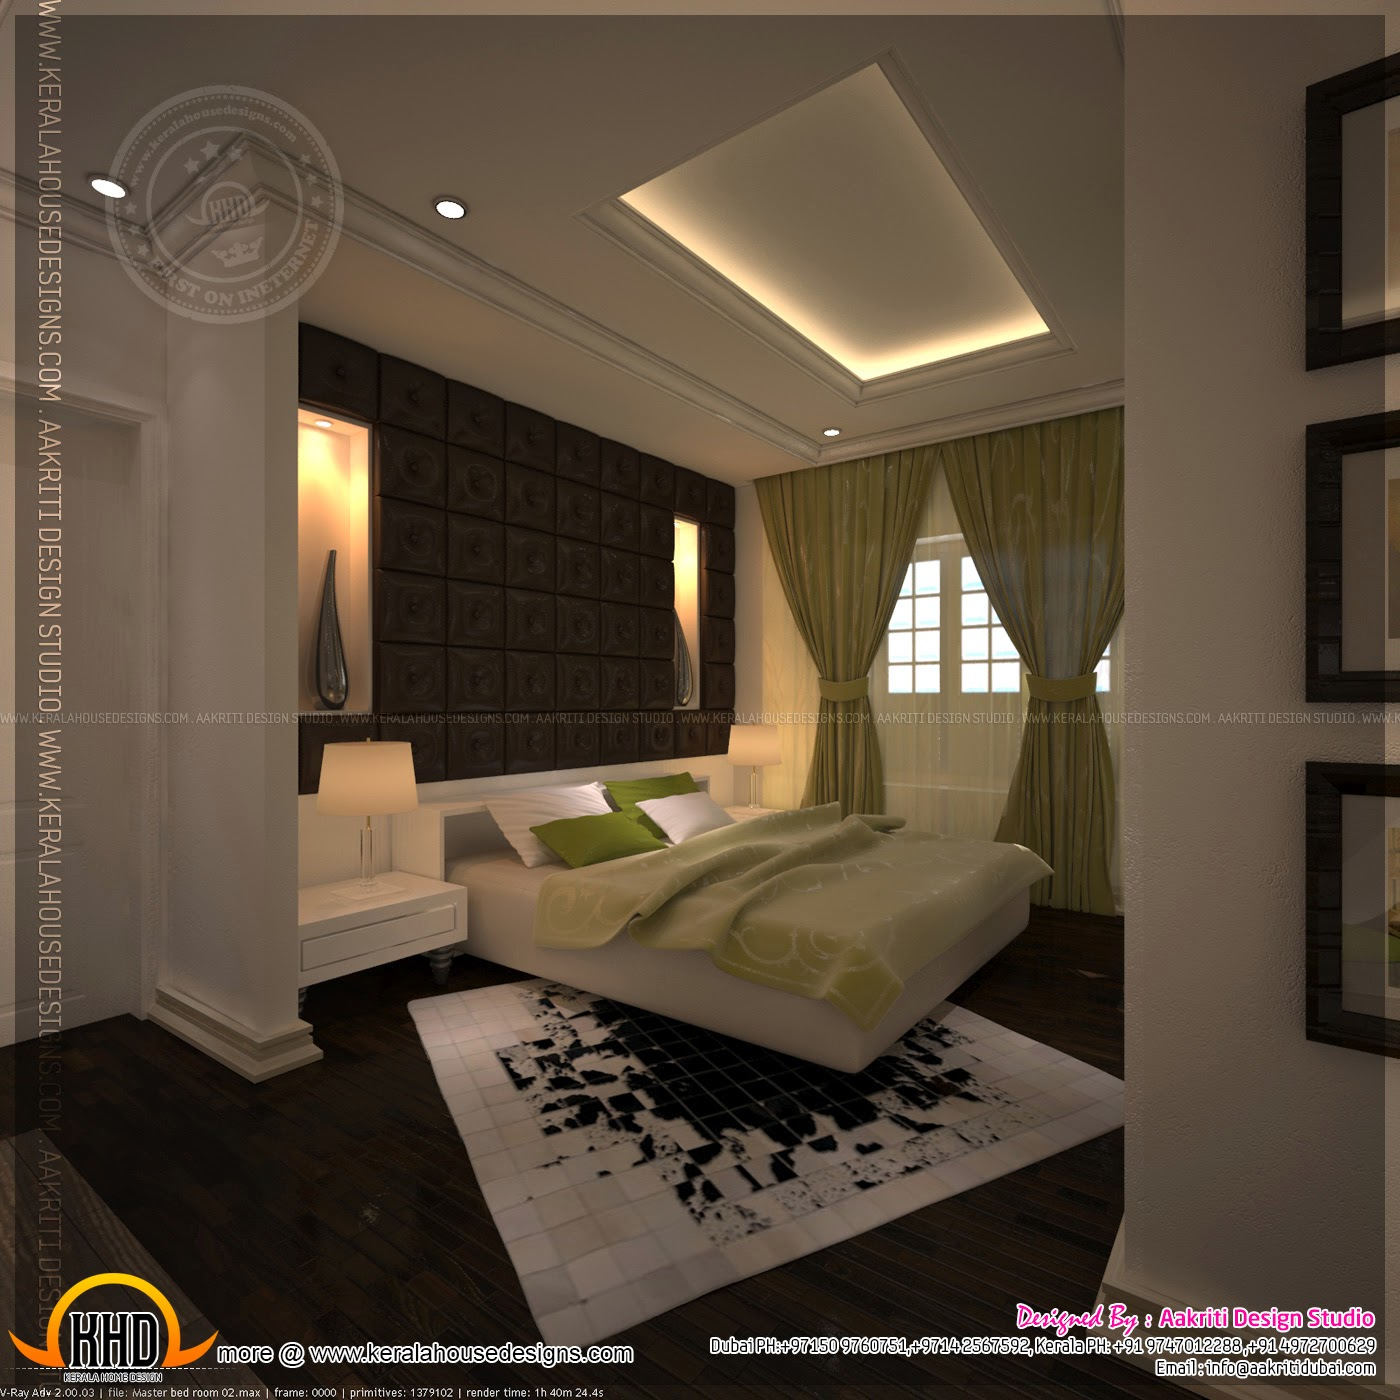 Interior Bed Room Design Master Bedroom And Bathroom Interior Design Kerala Home